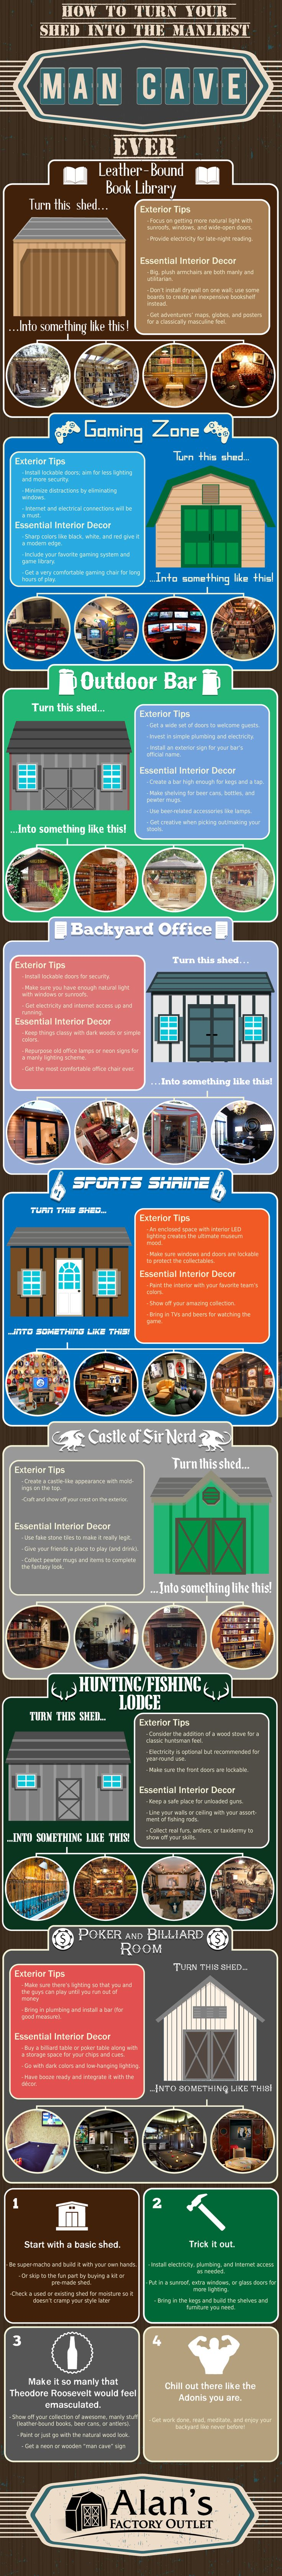 24 Best Diy Shed Garage Images On Pinterest Sheds Woodworking And How To Add Electric Power Easily An Outdoor Wire A Turn Your Into The Perfect Man Cave Infographic